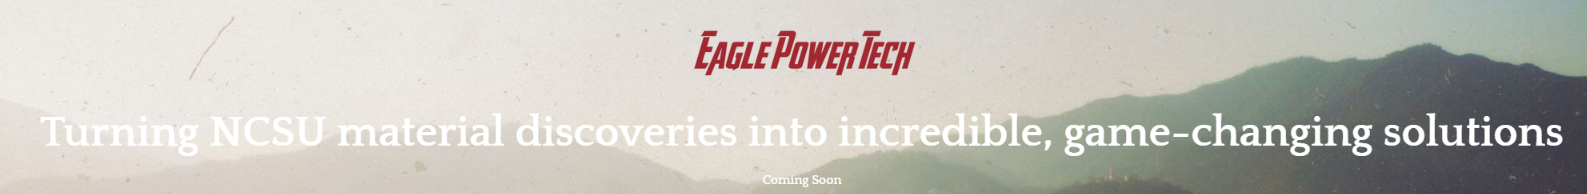 eagle power